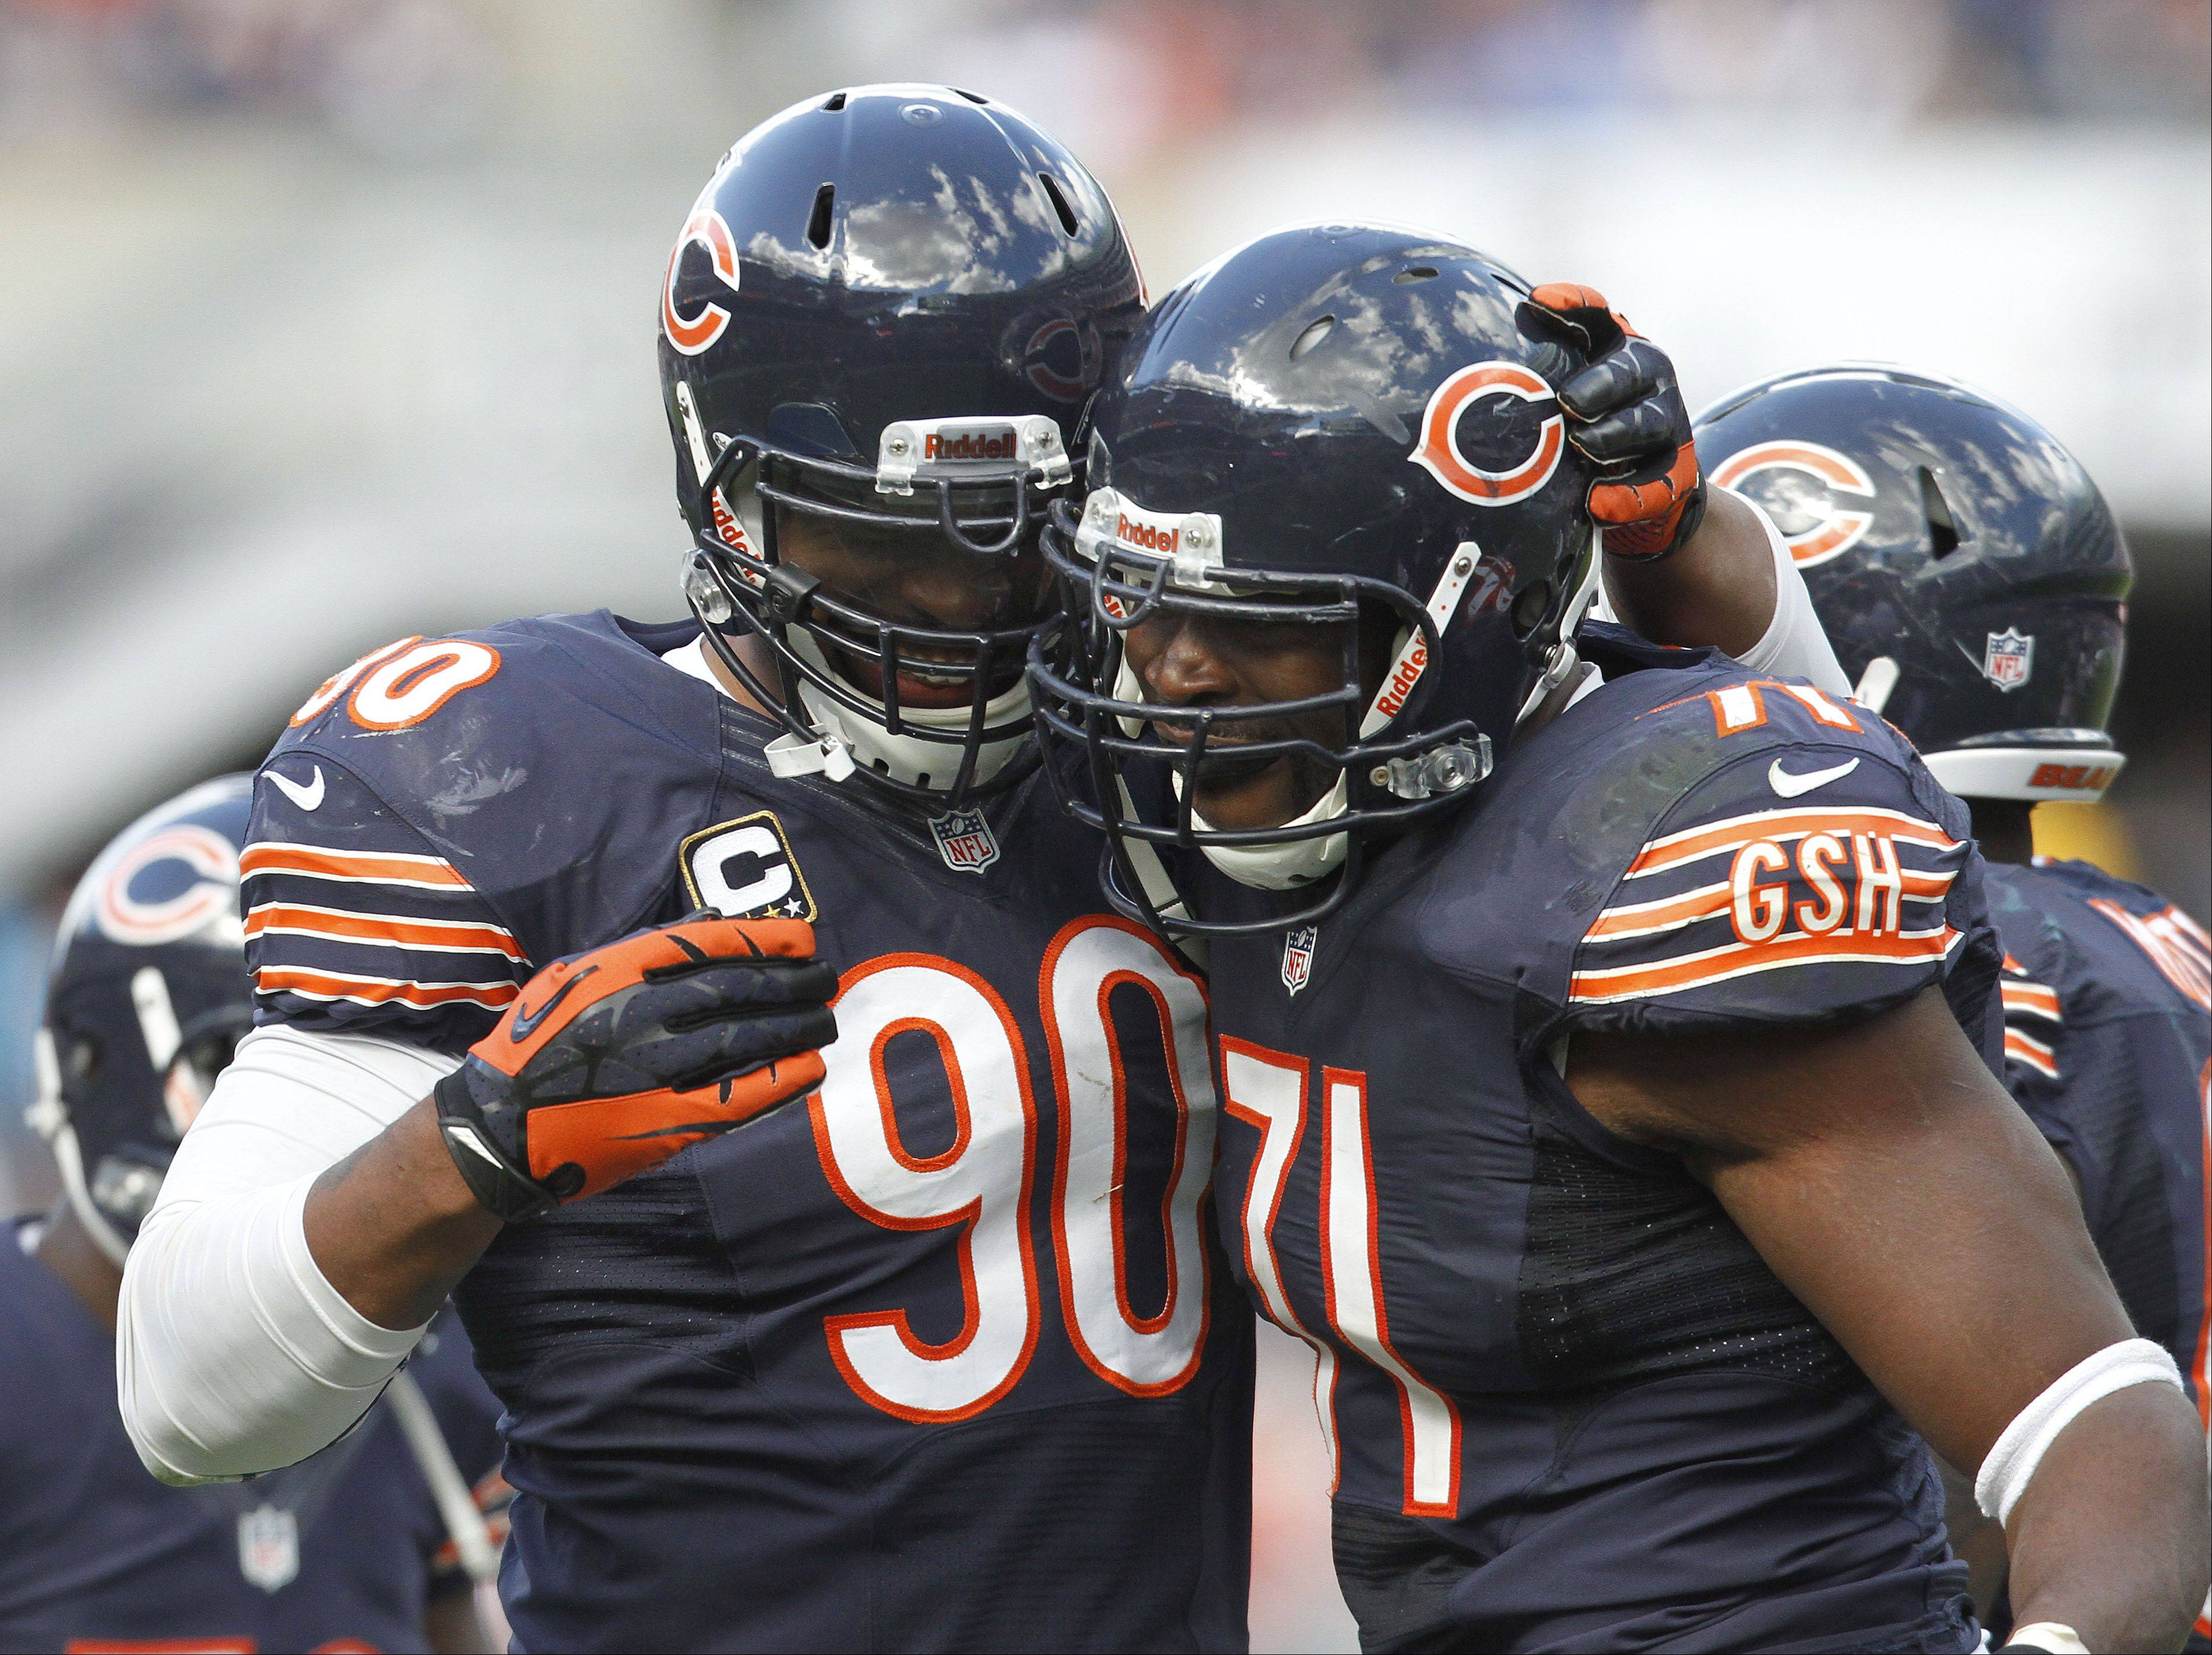 Chicago Bears defensive end Julius Peppers celebrates with defensive end Israel Idonije after a sack during the Bears 23-6 win over the St. Louis Rams Sunday at Soldier Field in Chicago.